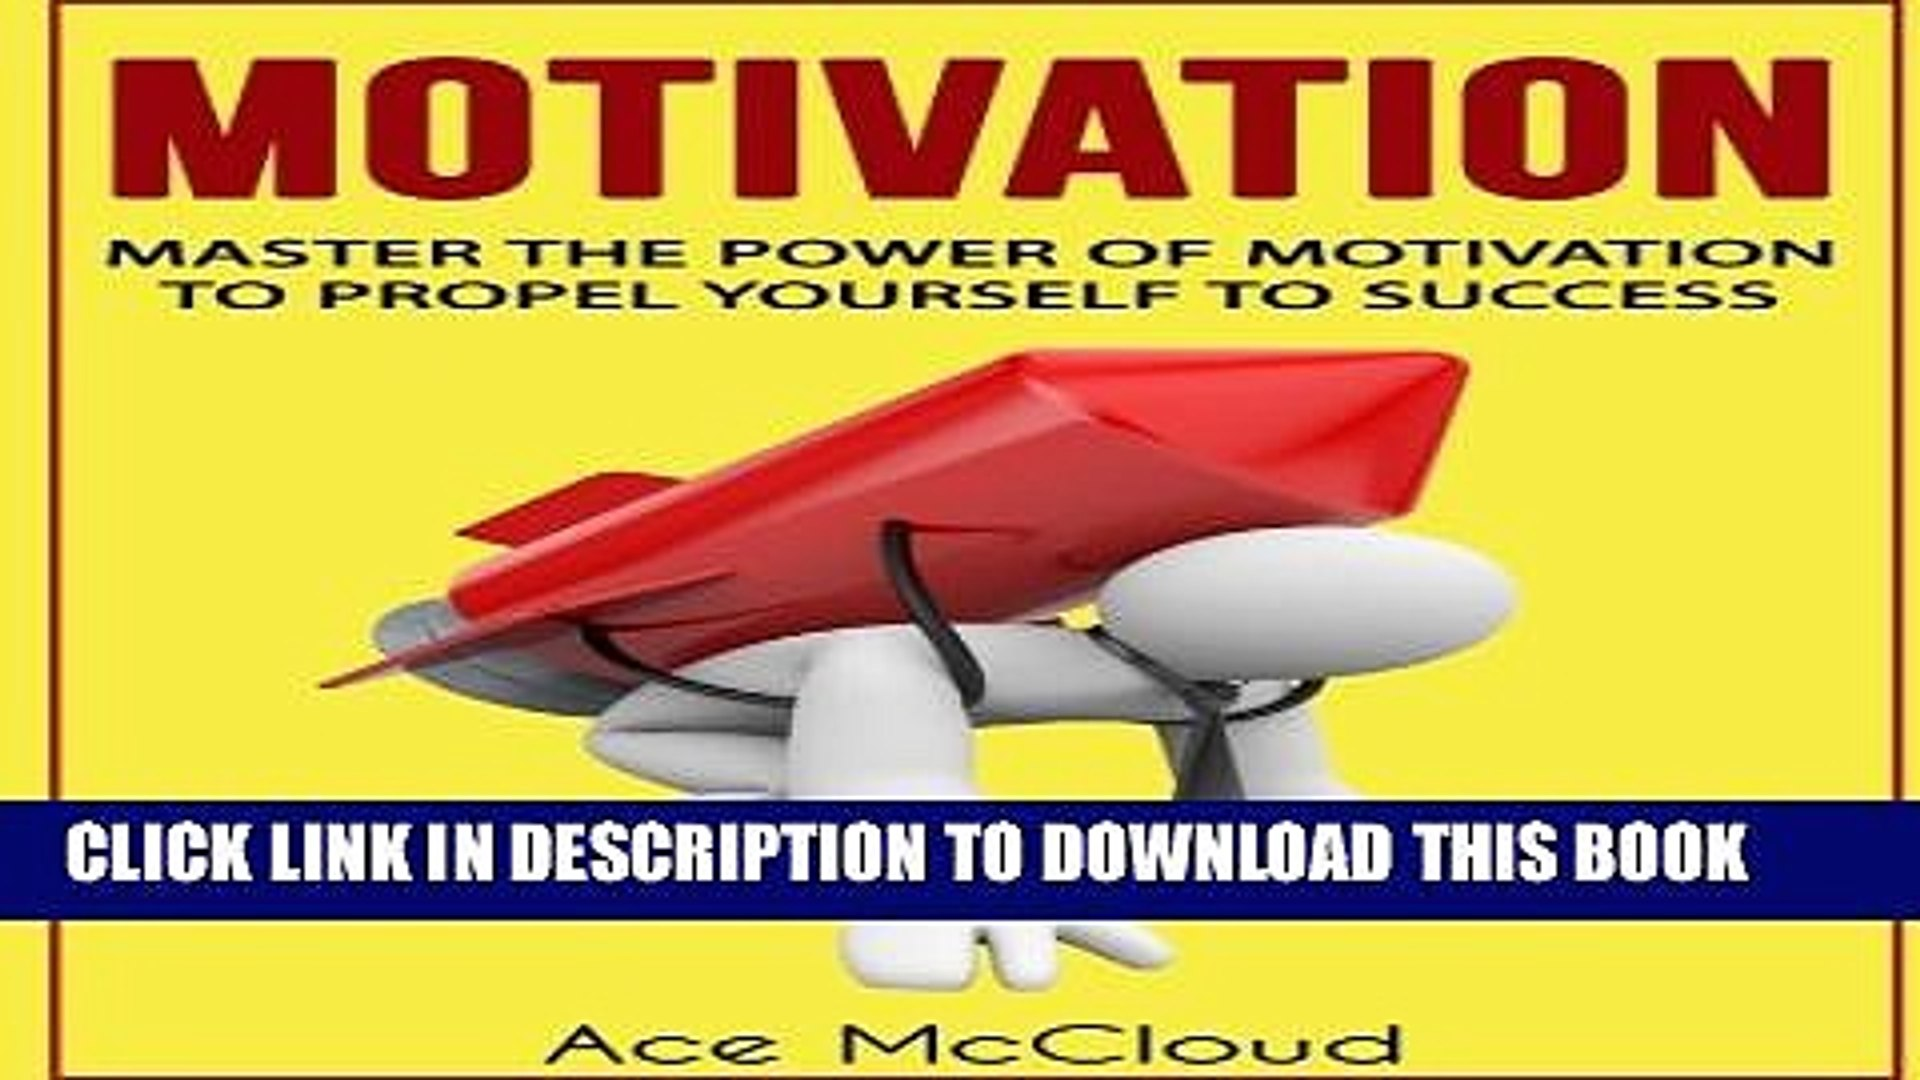 [PDF] Motivation: Master The Power Of Motivation To Propel Yourself To Success (Motivational